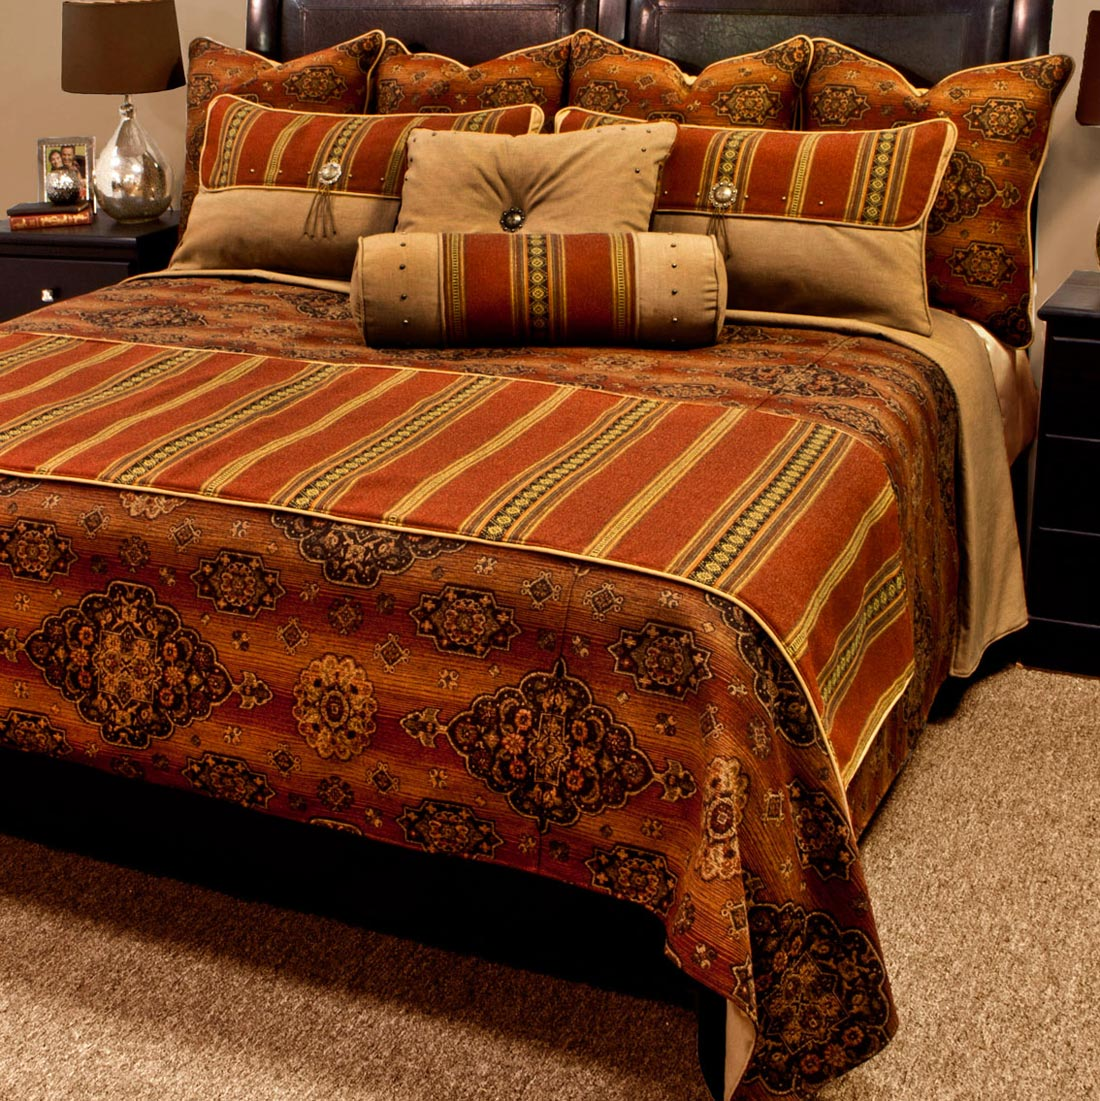 Kensington Rust Luxury Bed Set - King